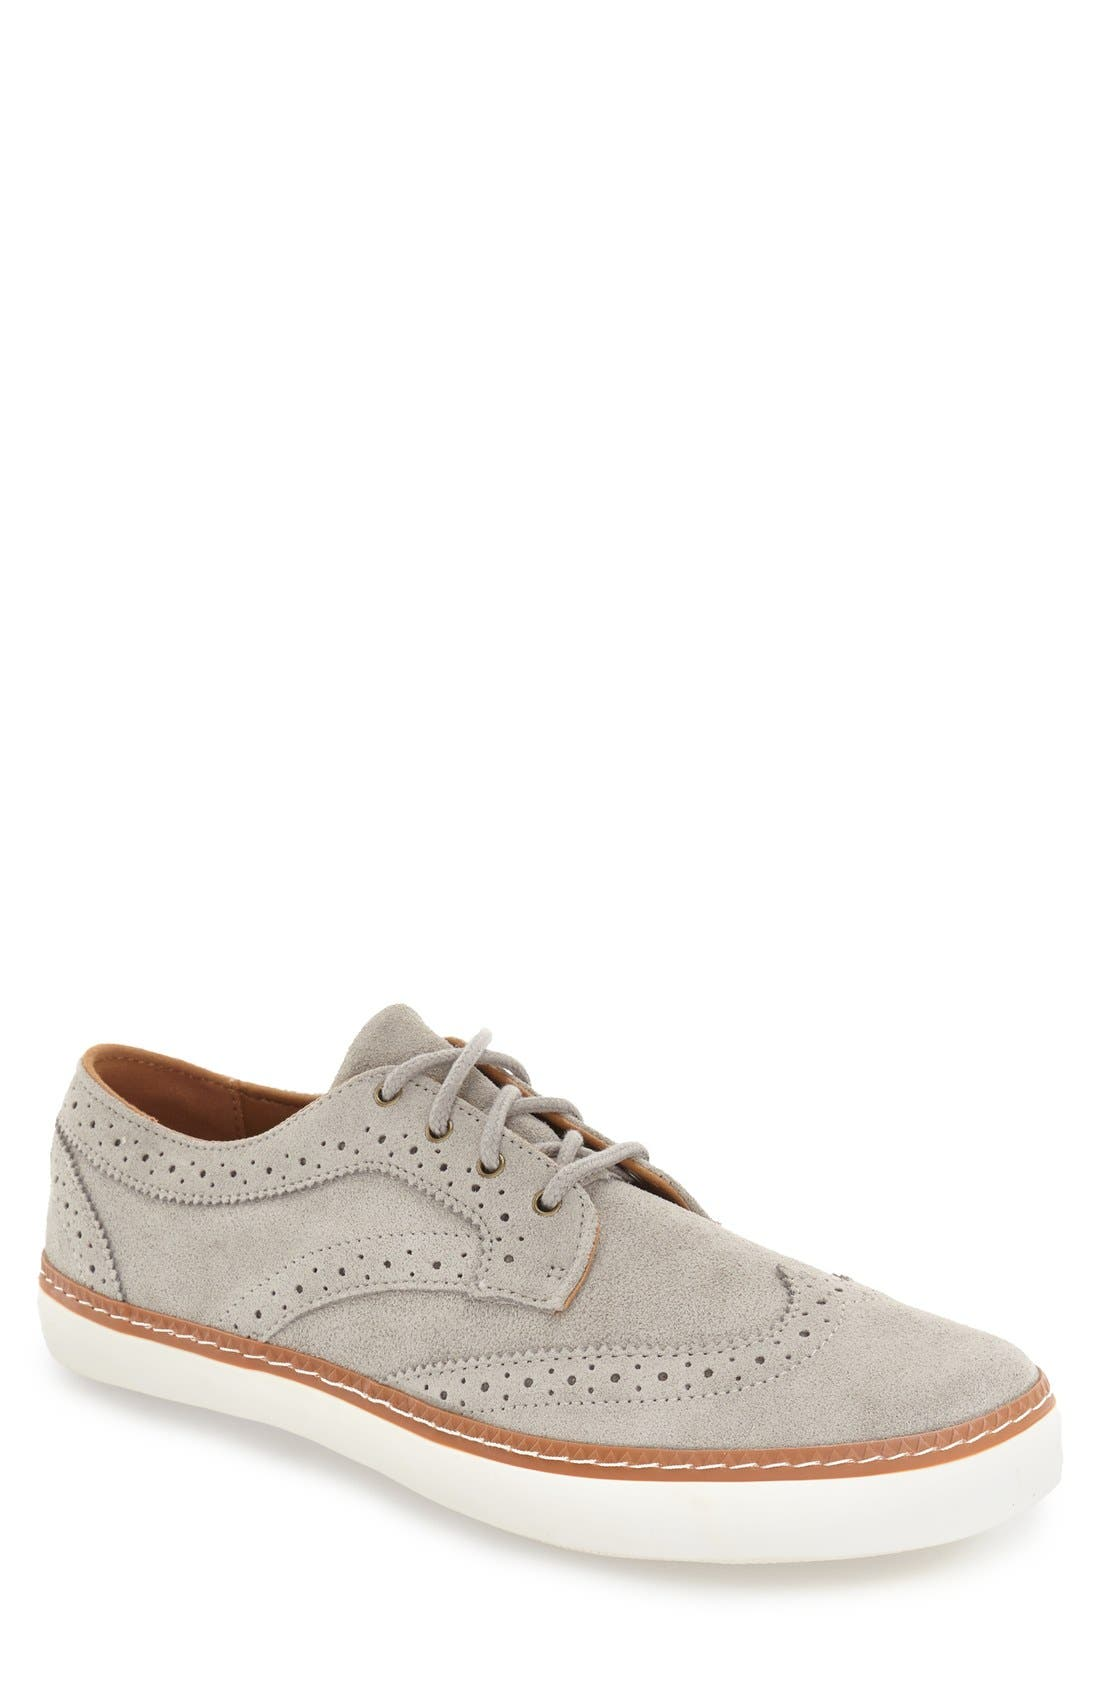 'Novello' Wingtip Sneaker,                             Main thumbnail 1, color,